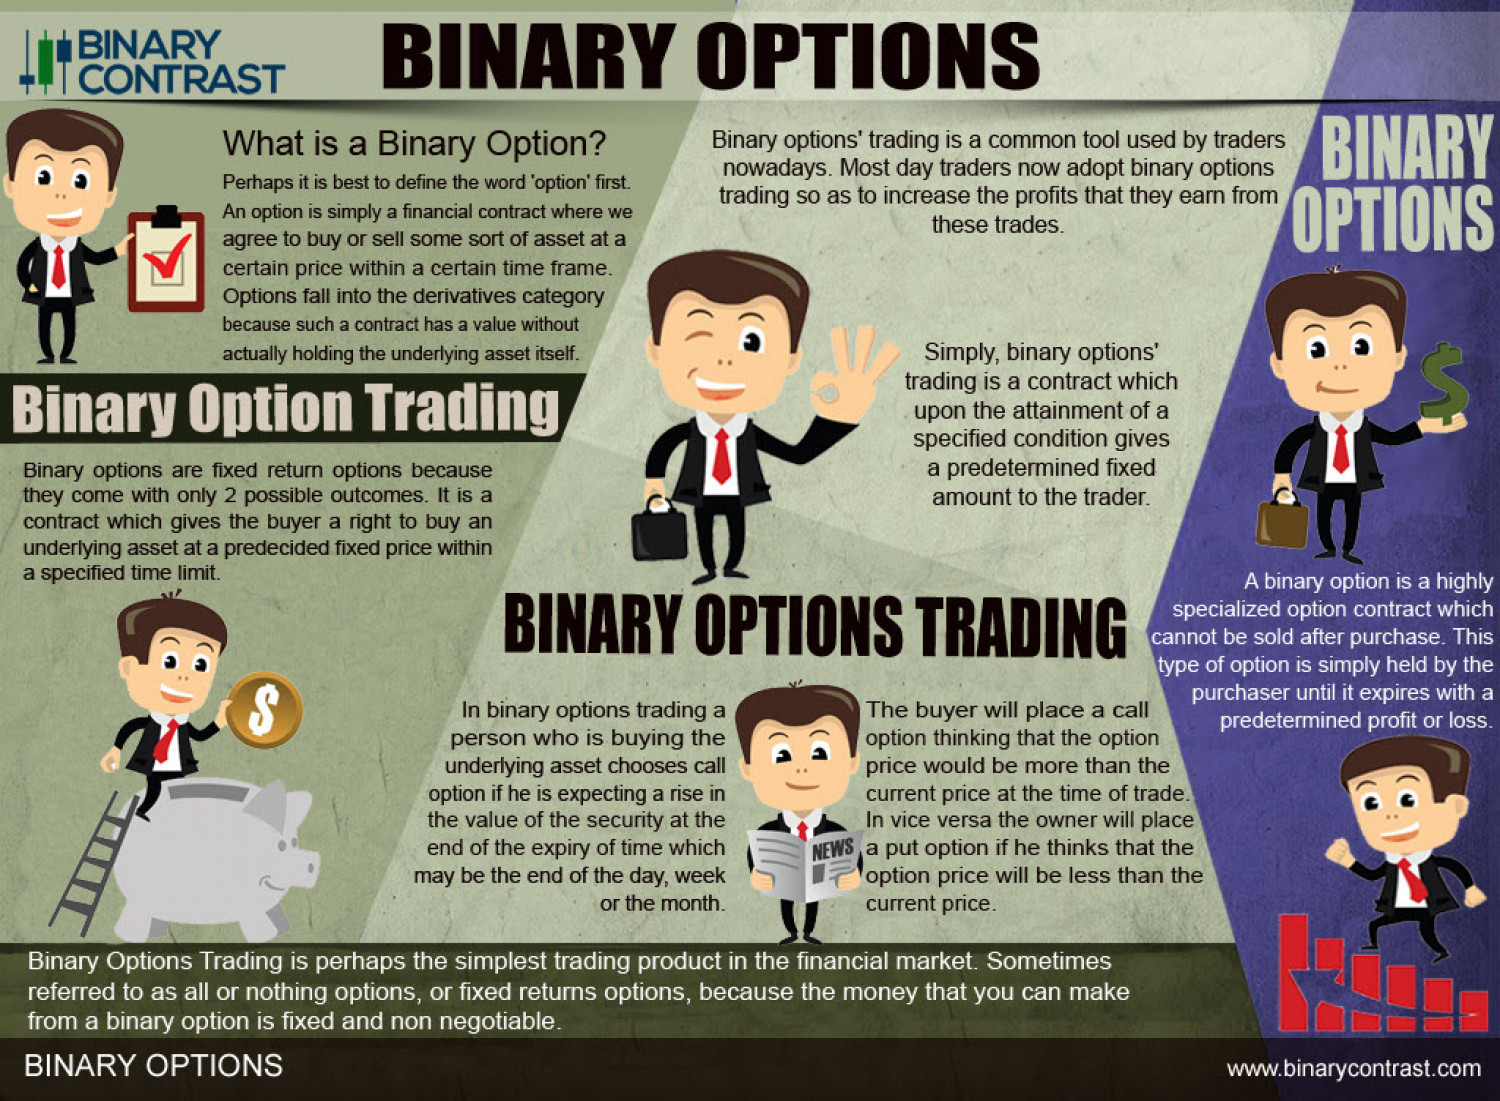 B digital option binary options